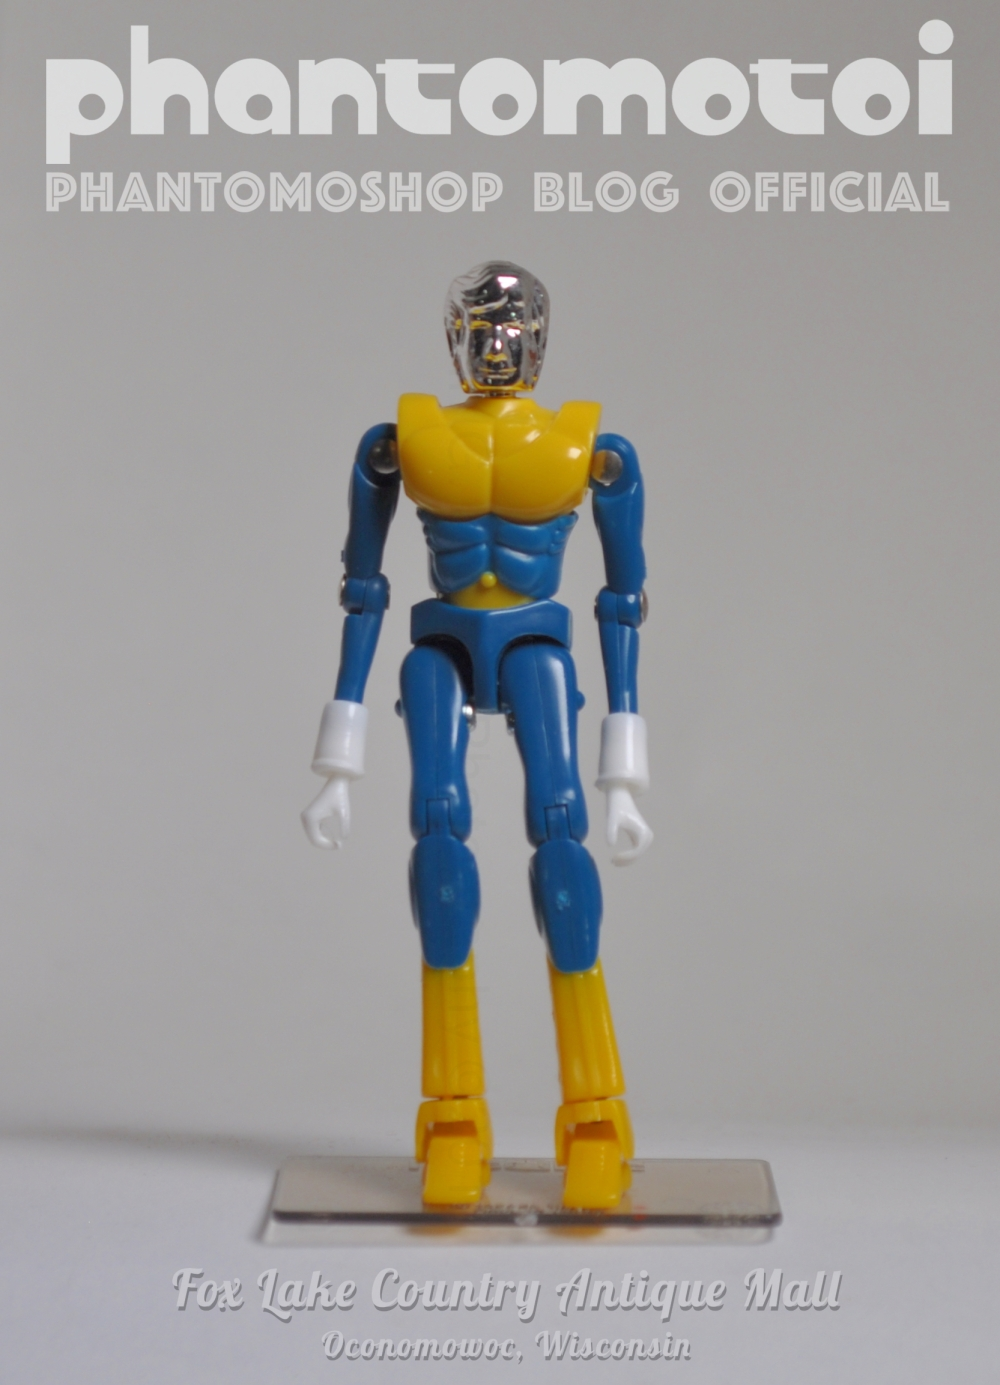 Micronaut_Customs_phantomotoi_SM_blu-Yell_800w